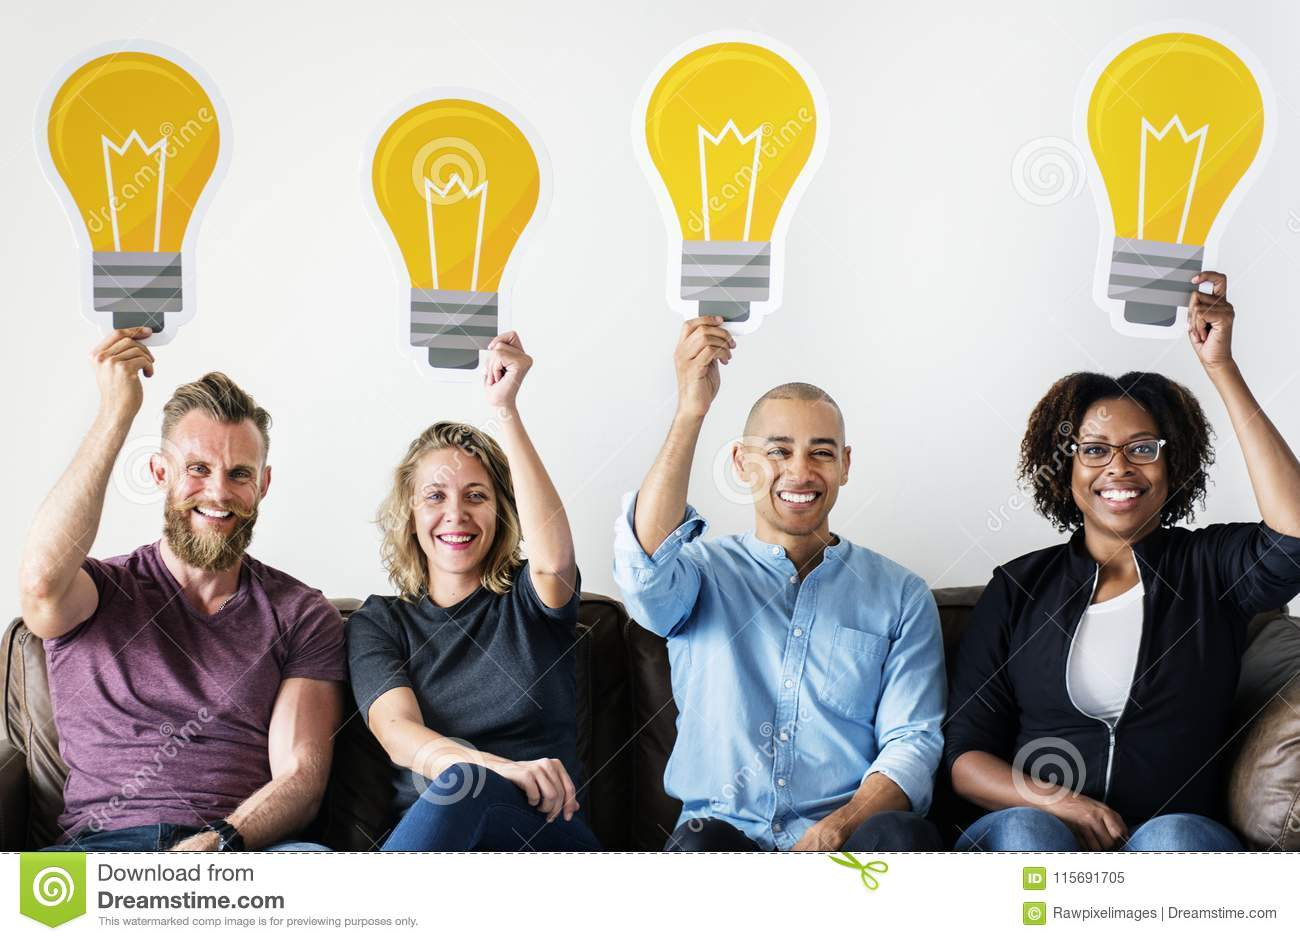 Diverse people carrying light bulb icons